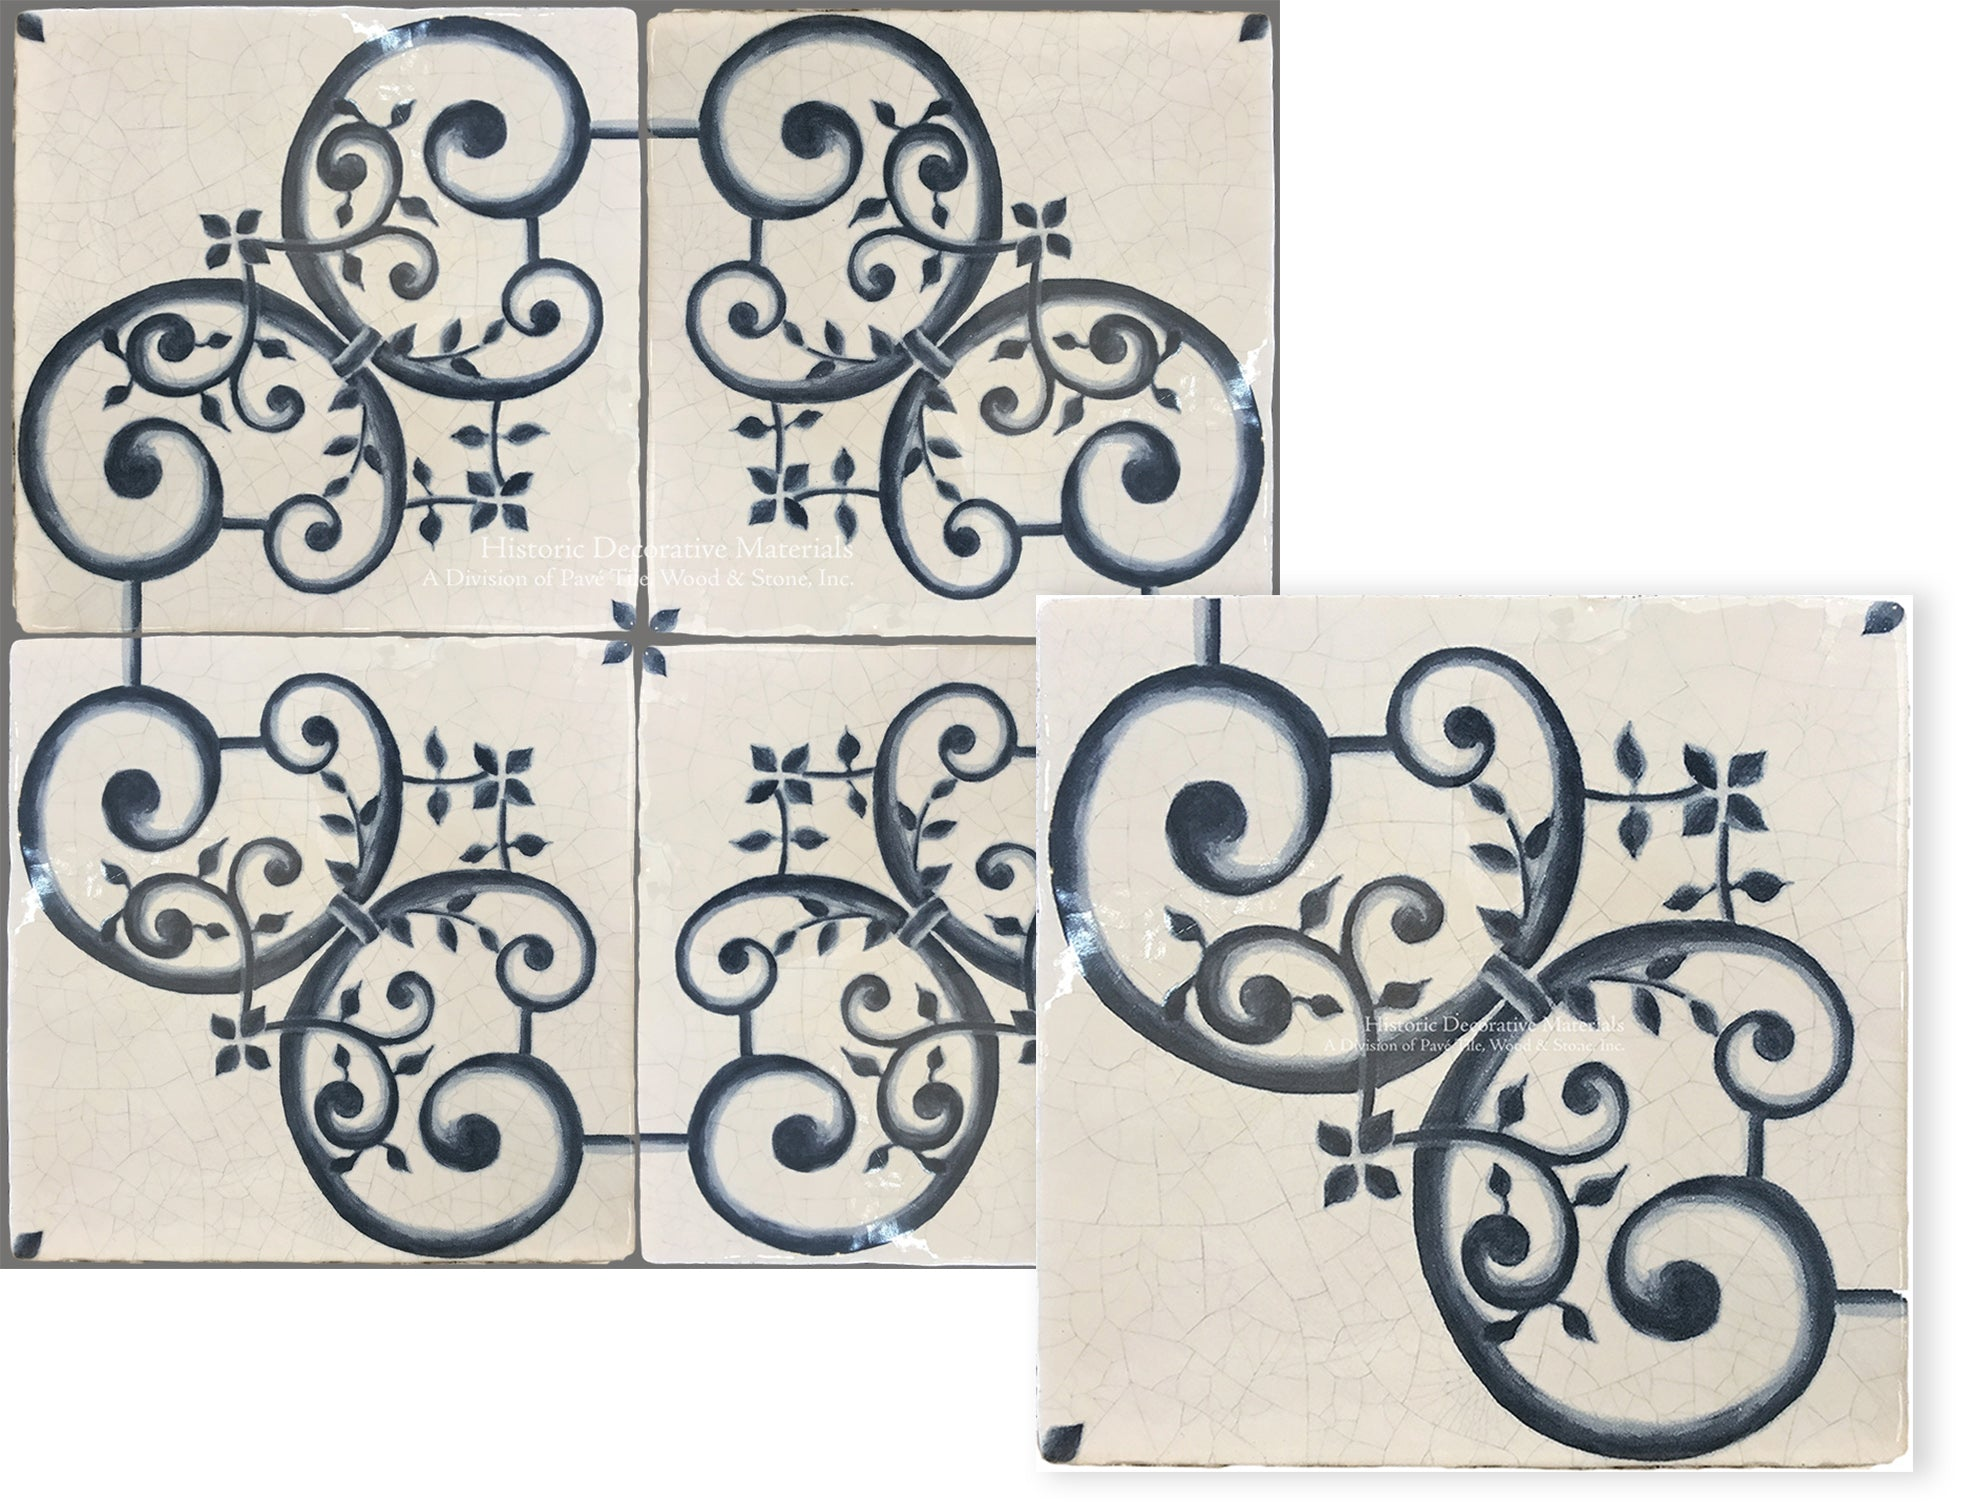 Historic Decorative Hand Painted Wall Tile that is blue and white decorative wall tile for kitchen backsplash, fireplace surround and bathroom walls for interior designs that love old world, farmhouse and luxury interiors